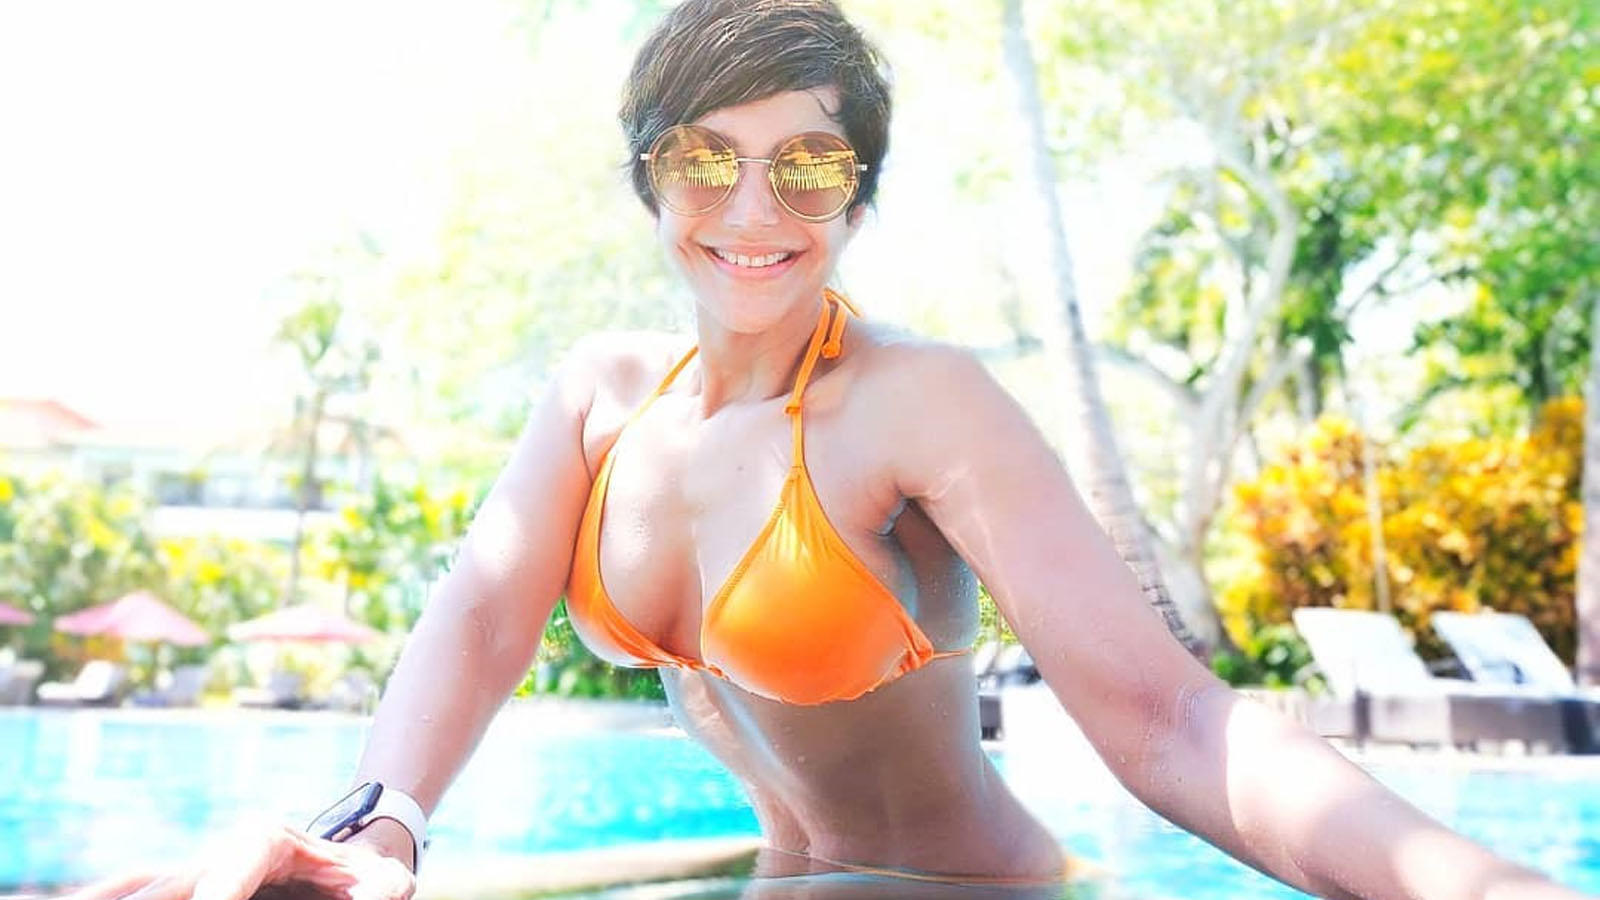 mandira-bedi-flaunts-incredibly-toned-figure-in-orange-bikini